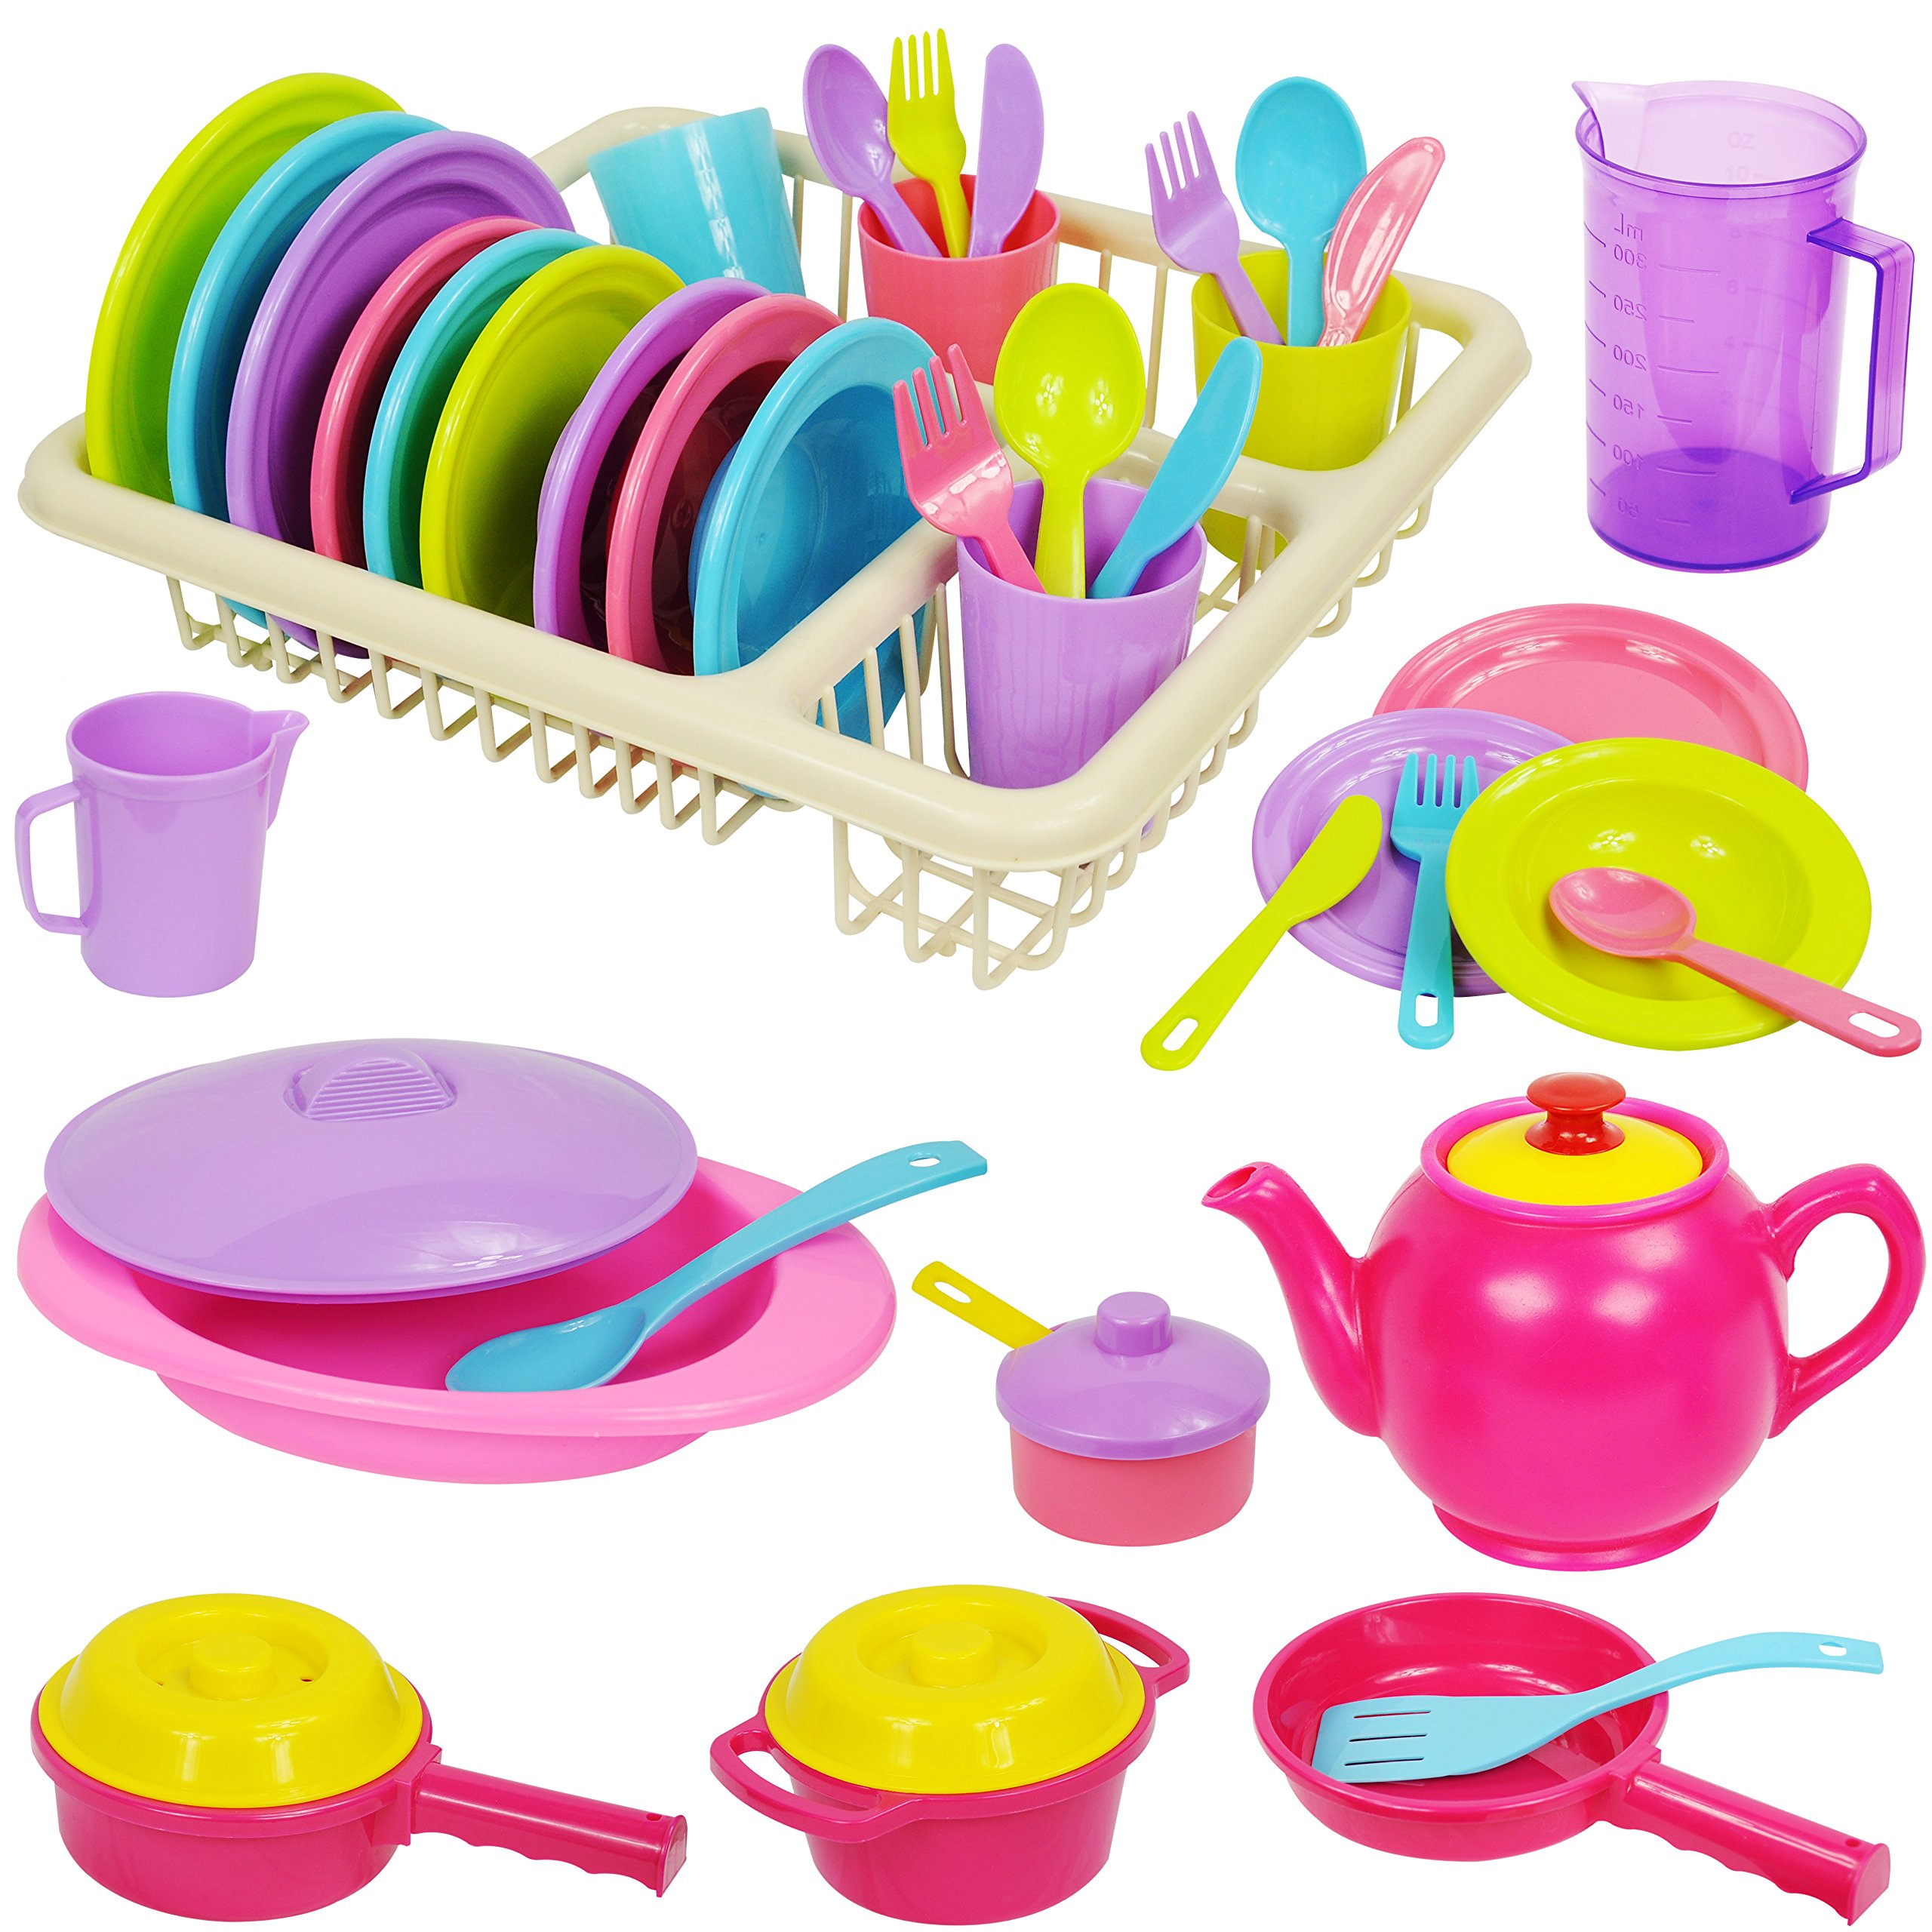 IQ Toys Incredibly Realistic Pretend Play Dish Set - Complete Service for 4 with Drainer, Pastel Colored Set of 40 Pieces